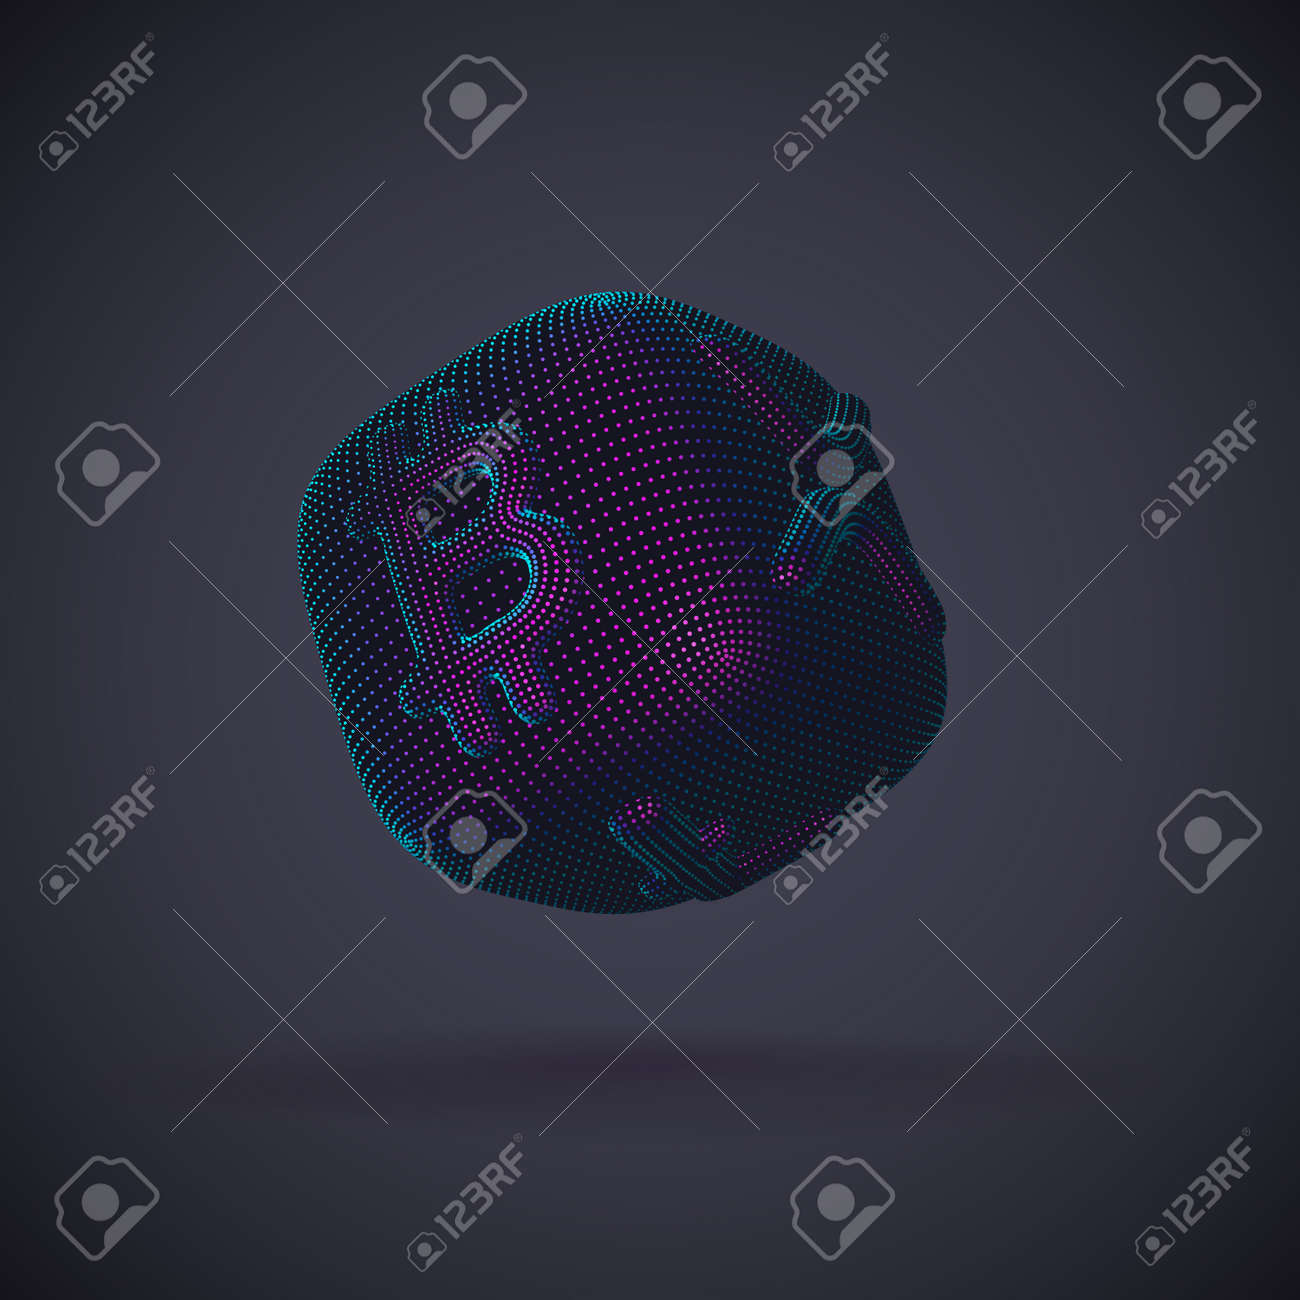 Digital 3D dice with cryptocurrency logos Bitcoin, Litecoin and Ripple on gray background. Concept of luck and fortune in crypto investing and stock exchange trading. Vector illustration - 162069098